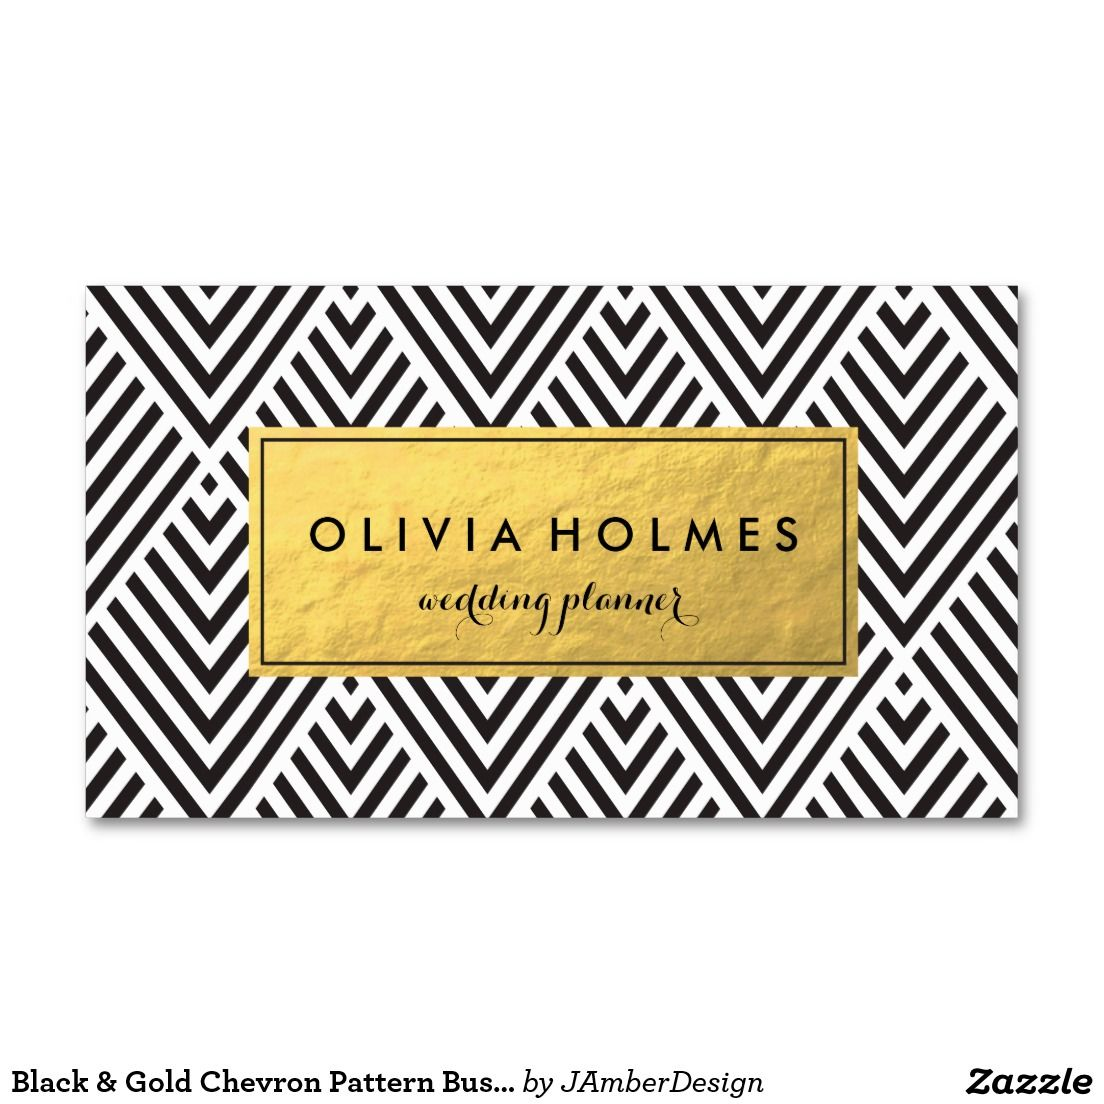 Black & Gold Chevron Pattern Business Card | Business cards ...